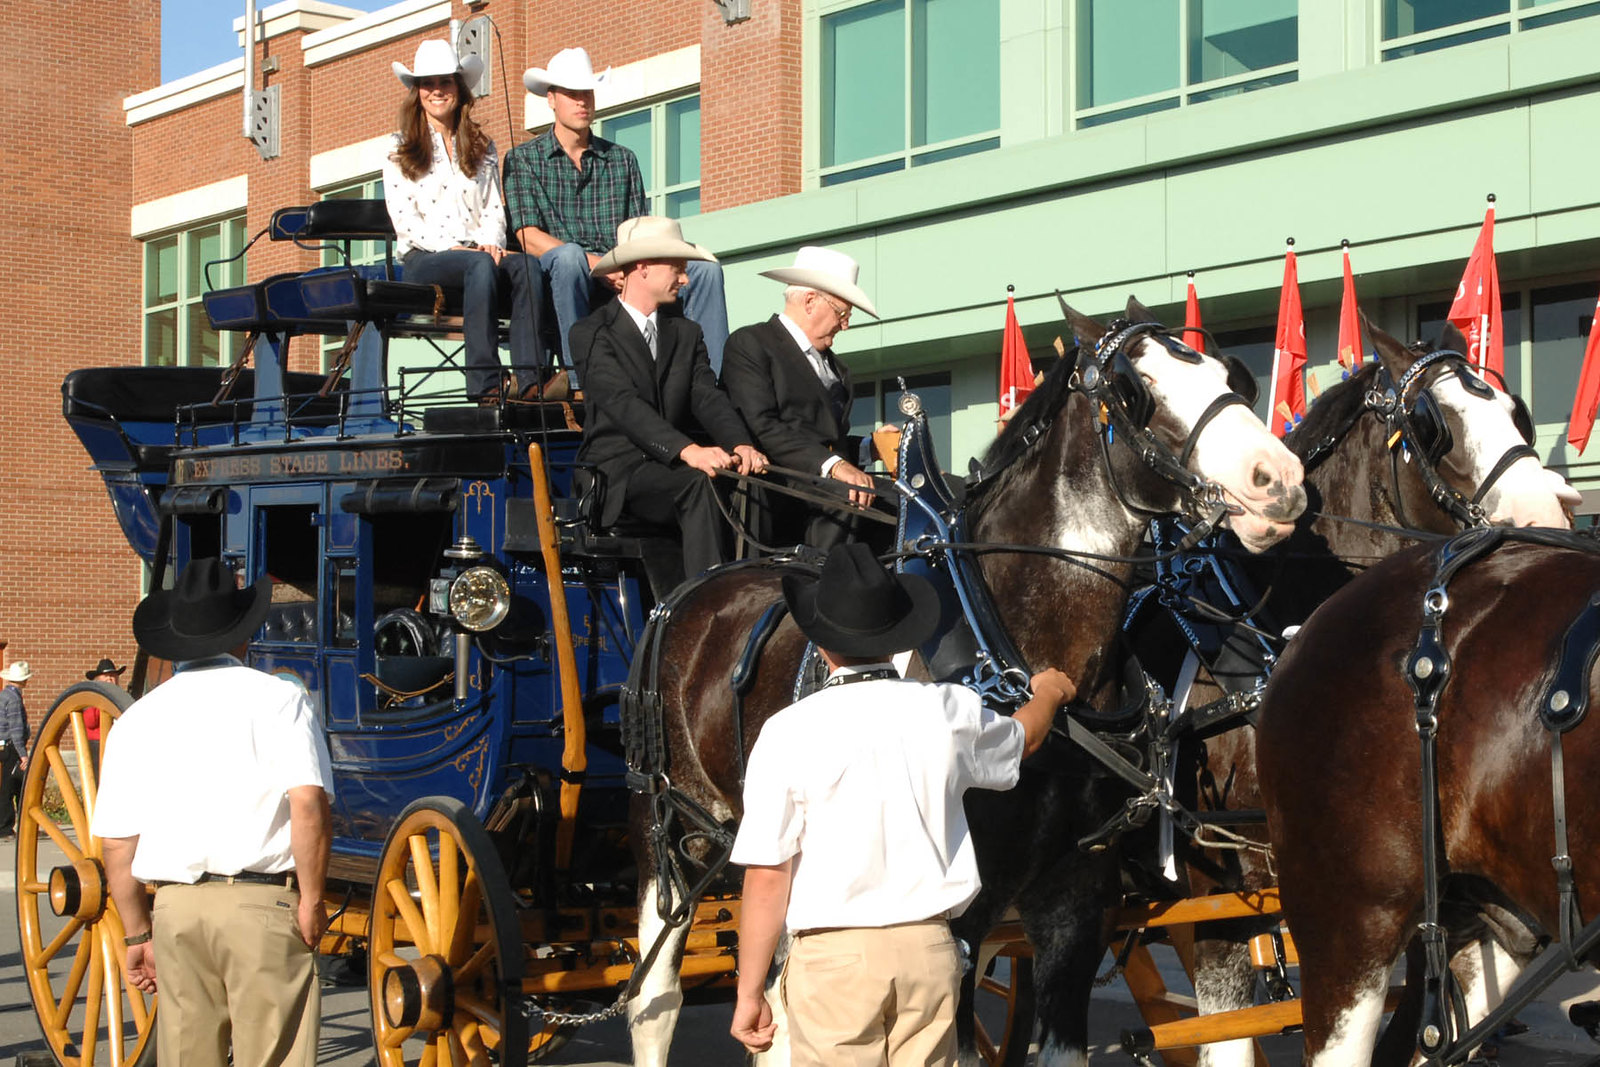 The Duke and Duchess of Cambrridge arriving at the Calgary Stampede Parade